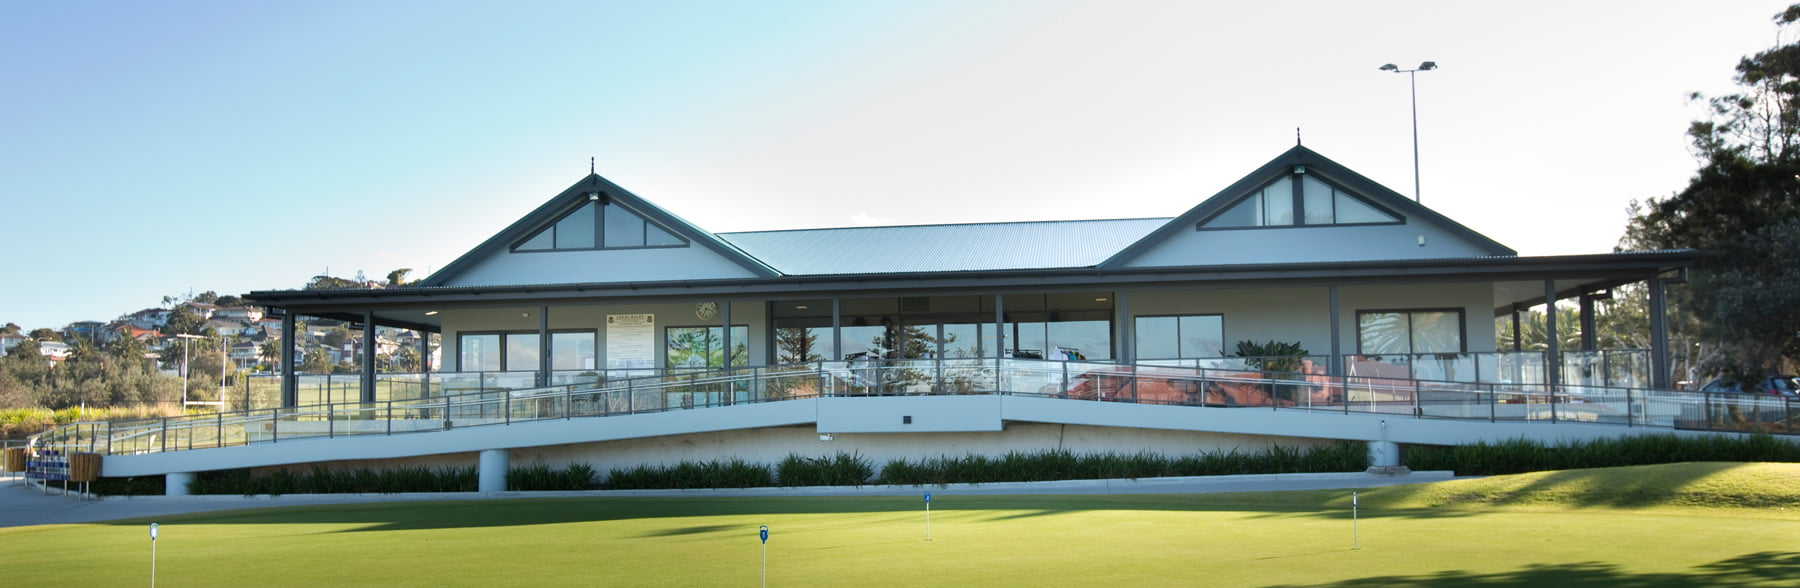 LONG-REEF-GOLF-CLUB-HOUSE.jpg